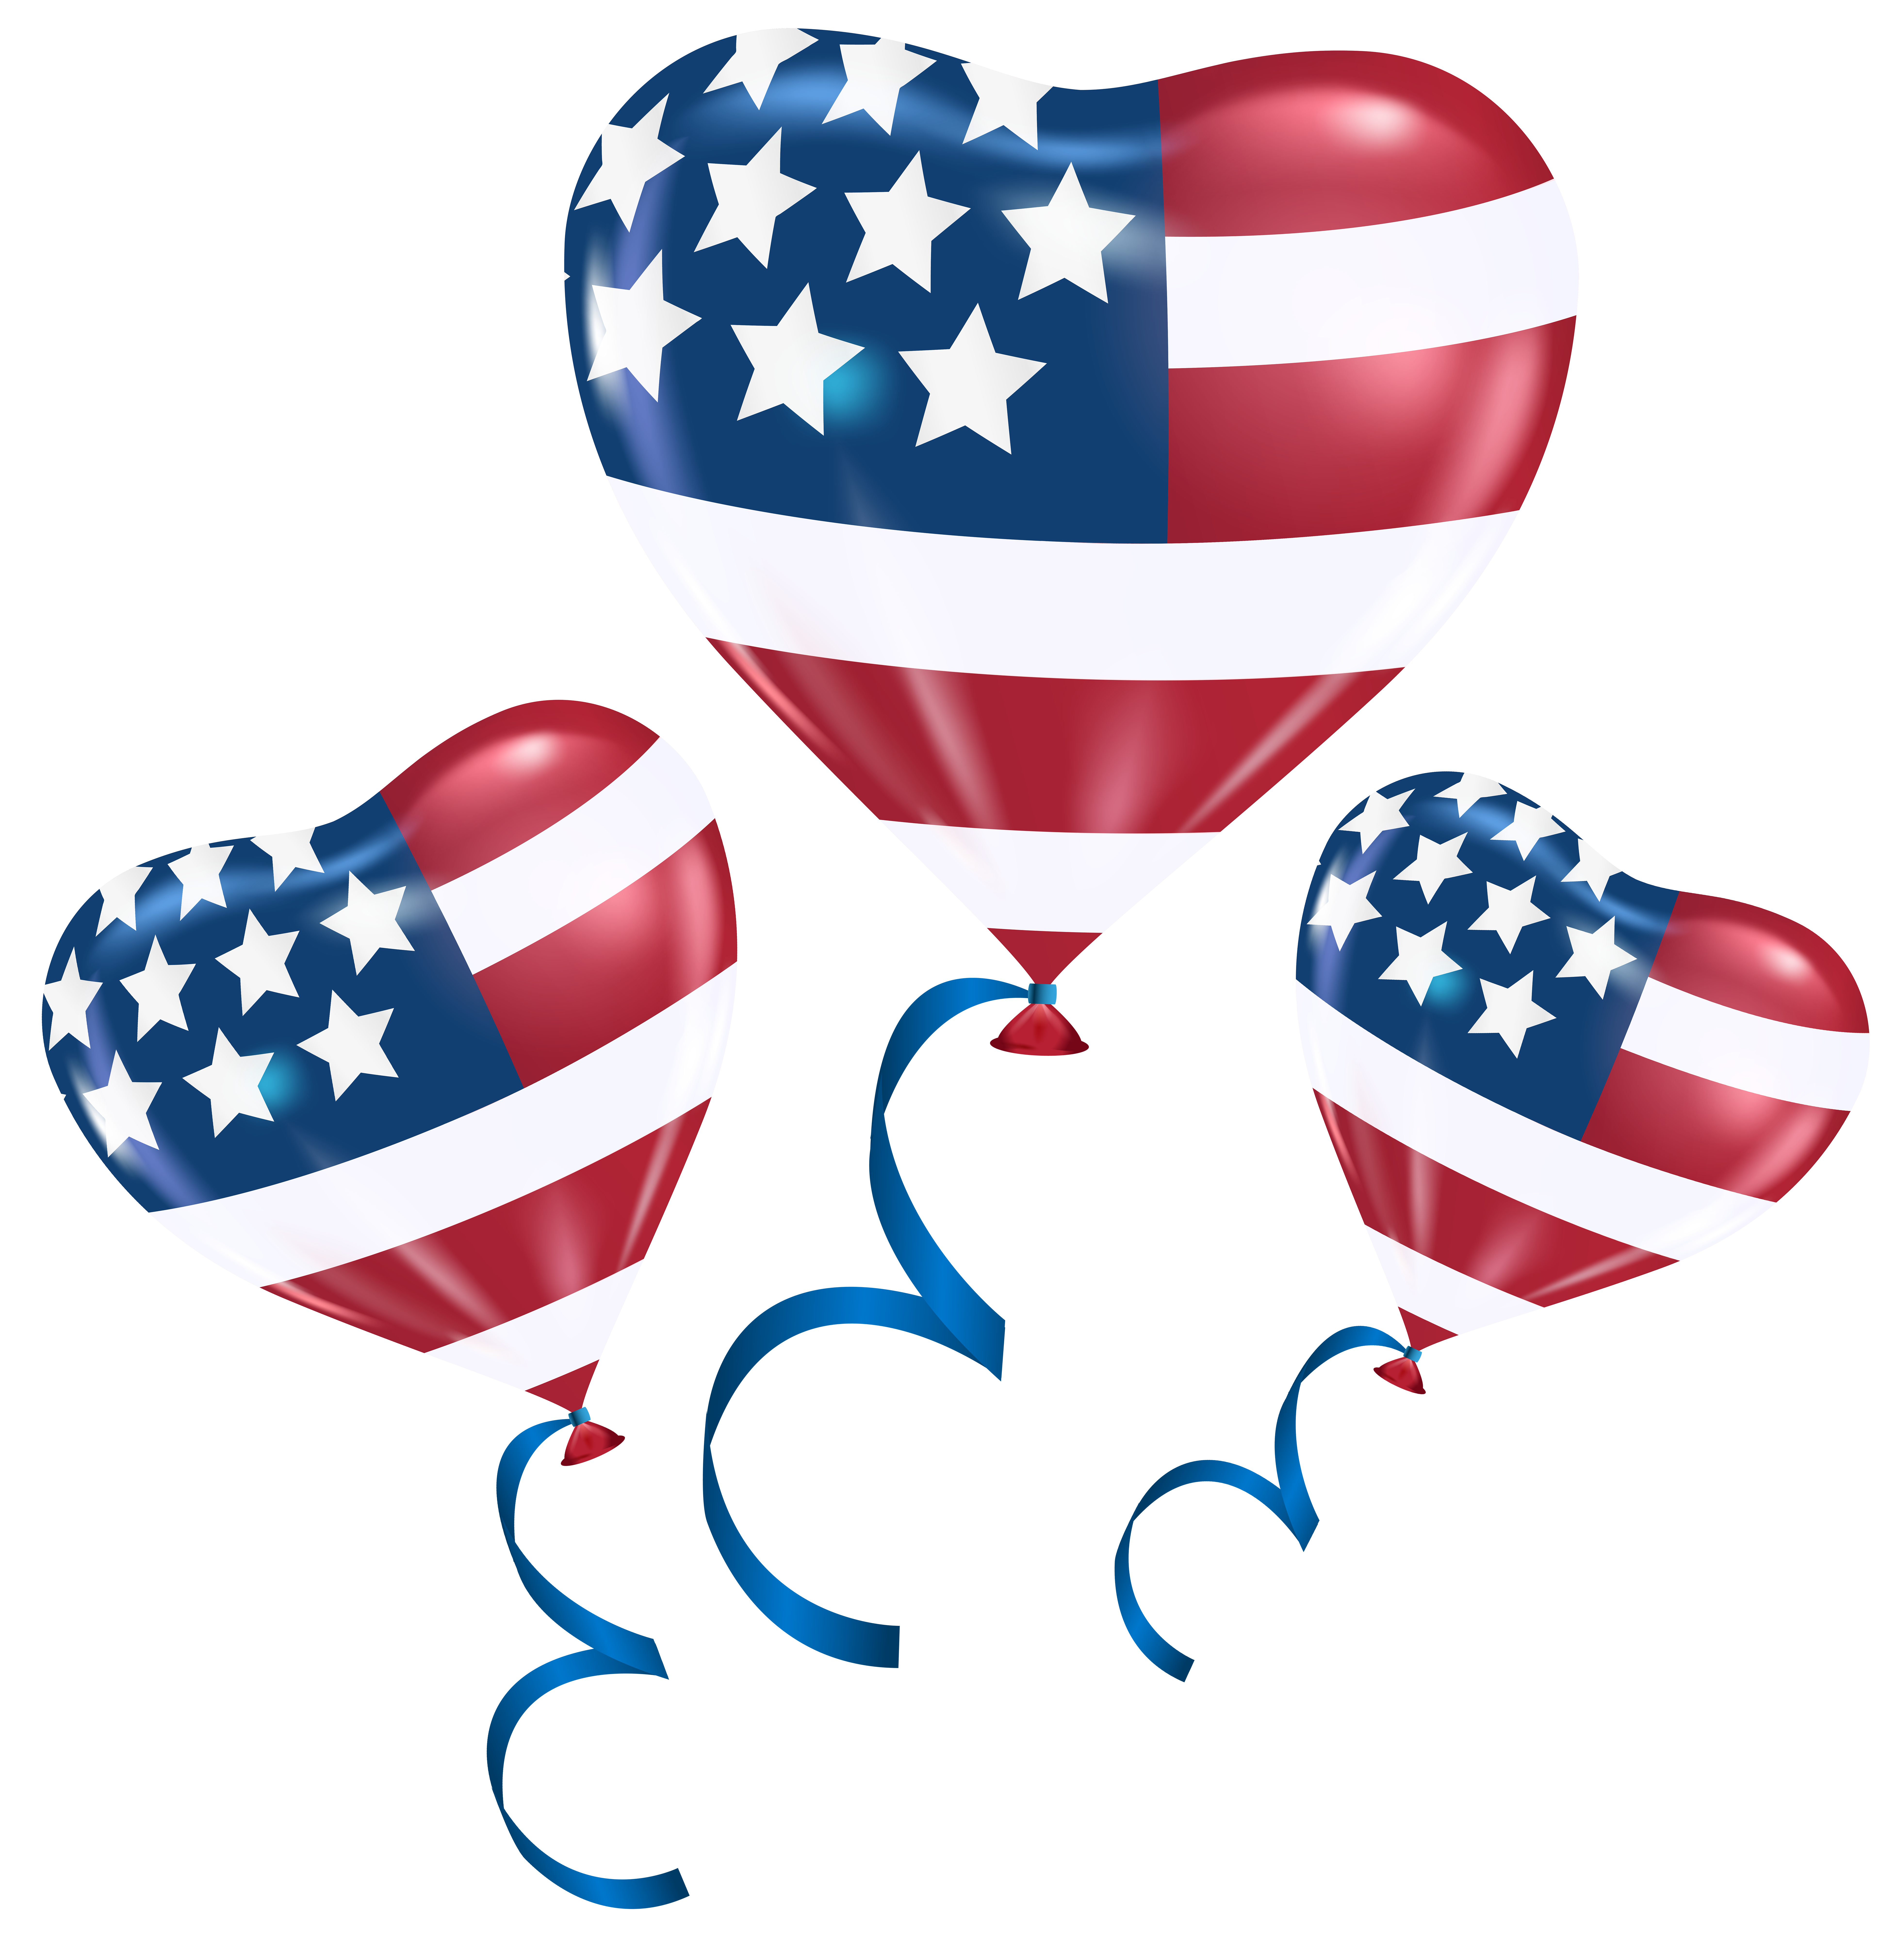 Usa 4th of july rocket clipart clip freeuse 4th Of July Clipart | Free download best 4th Of July Clipart ... clip freeuse